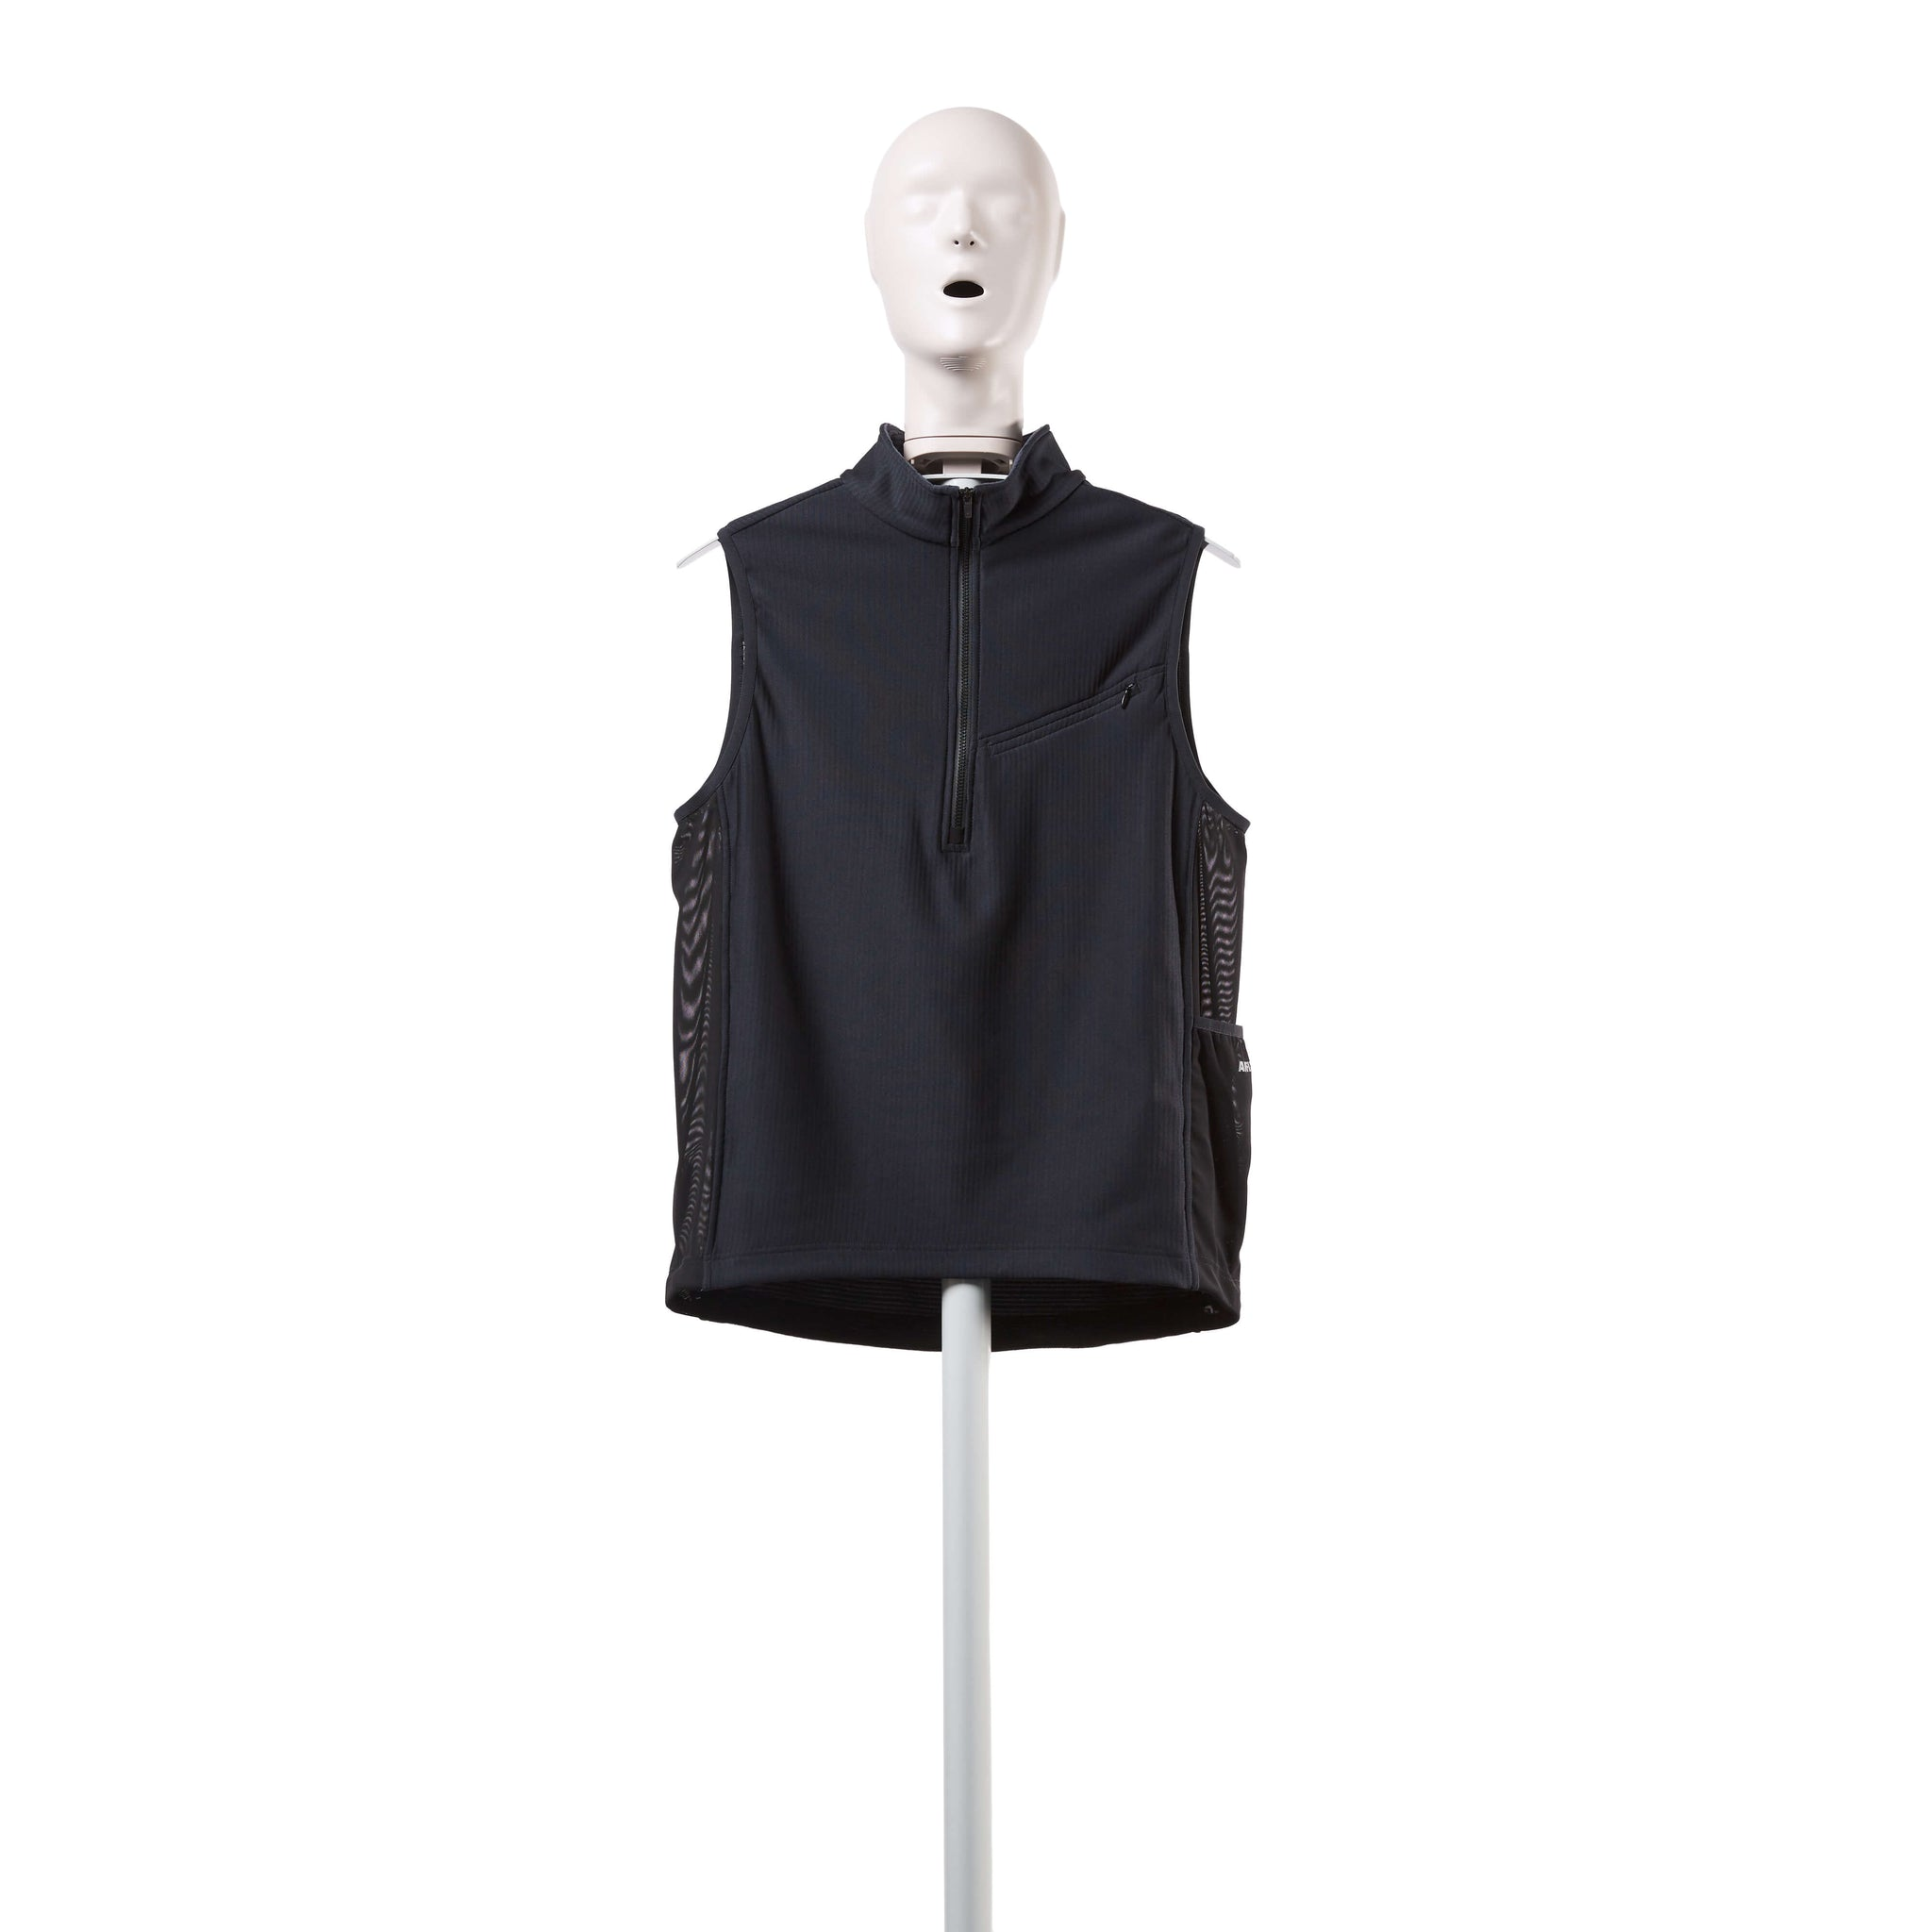 AFFIX WORKS AFFX WRKS PANEL VEST BLACK